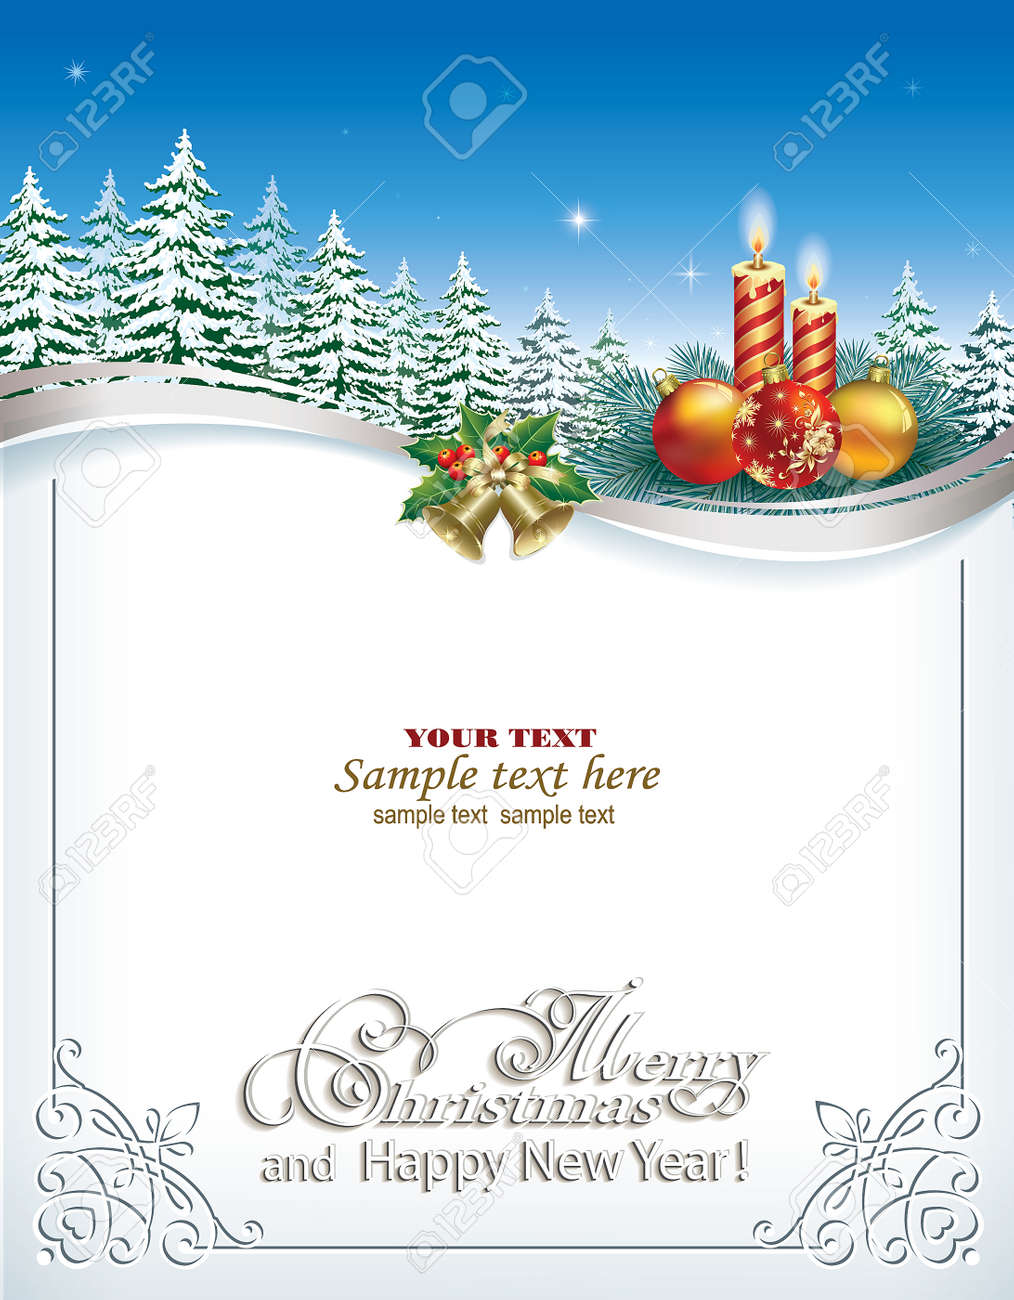 Christmas Card With Candles On The Background Of Fir Trees Royalty